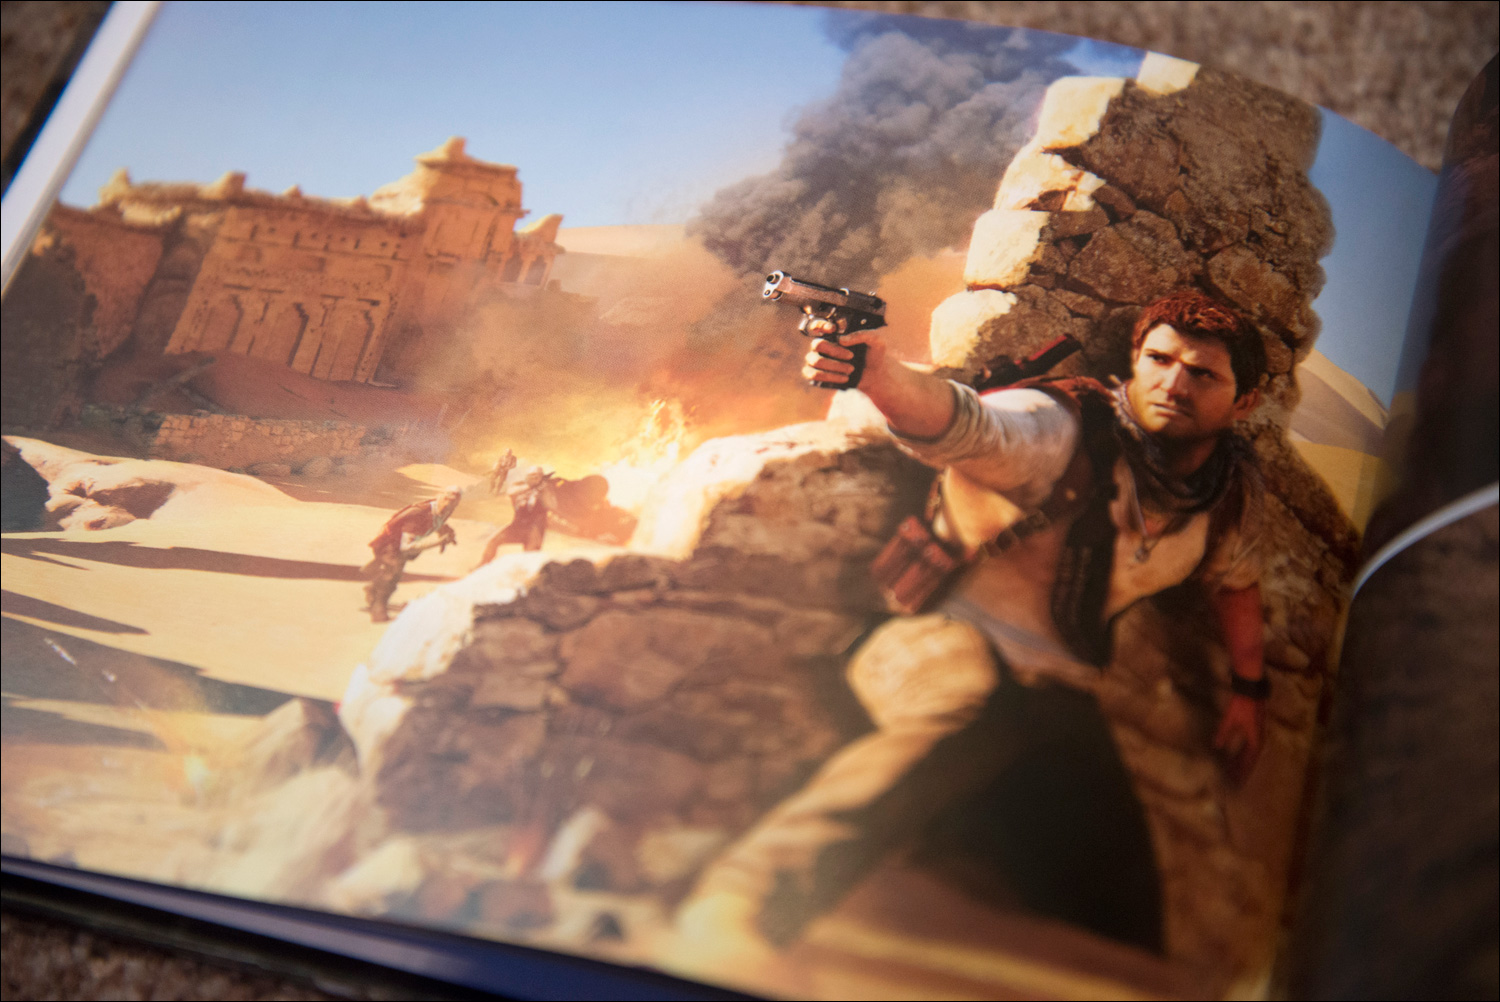 Uncharted-The-Nathan-Drake-Collection-Special-Edition-Open-Art-7